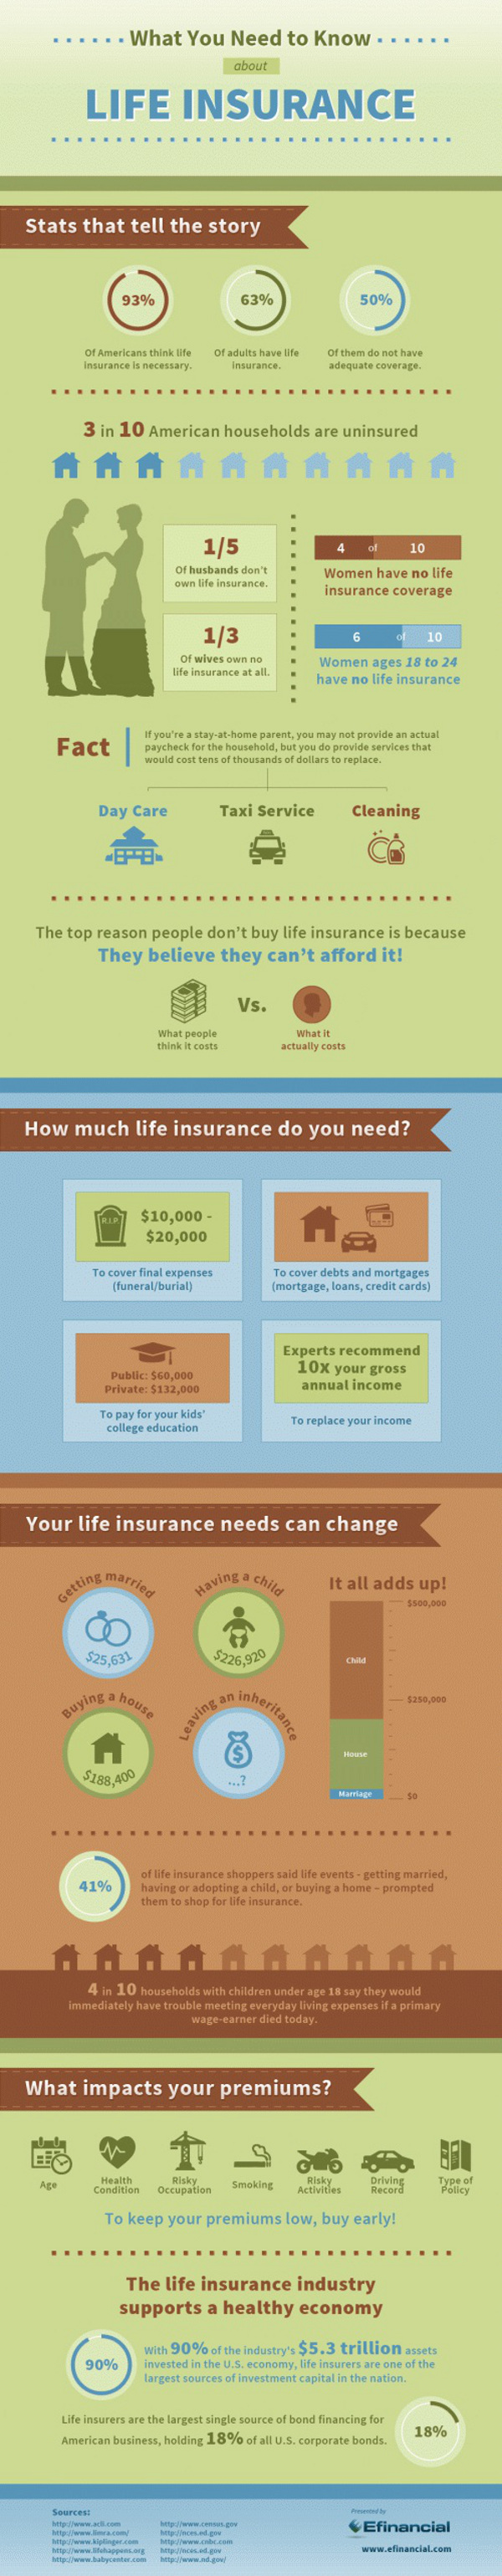 What You Need to Know About Life Insurance (Infographic)